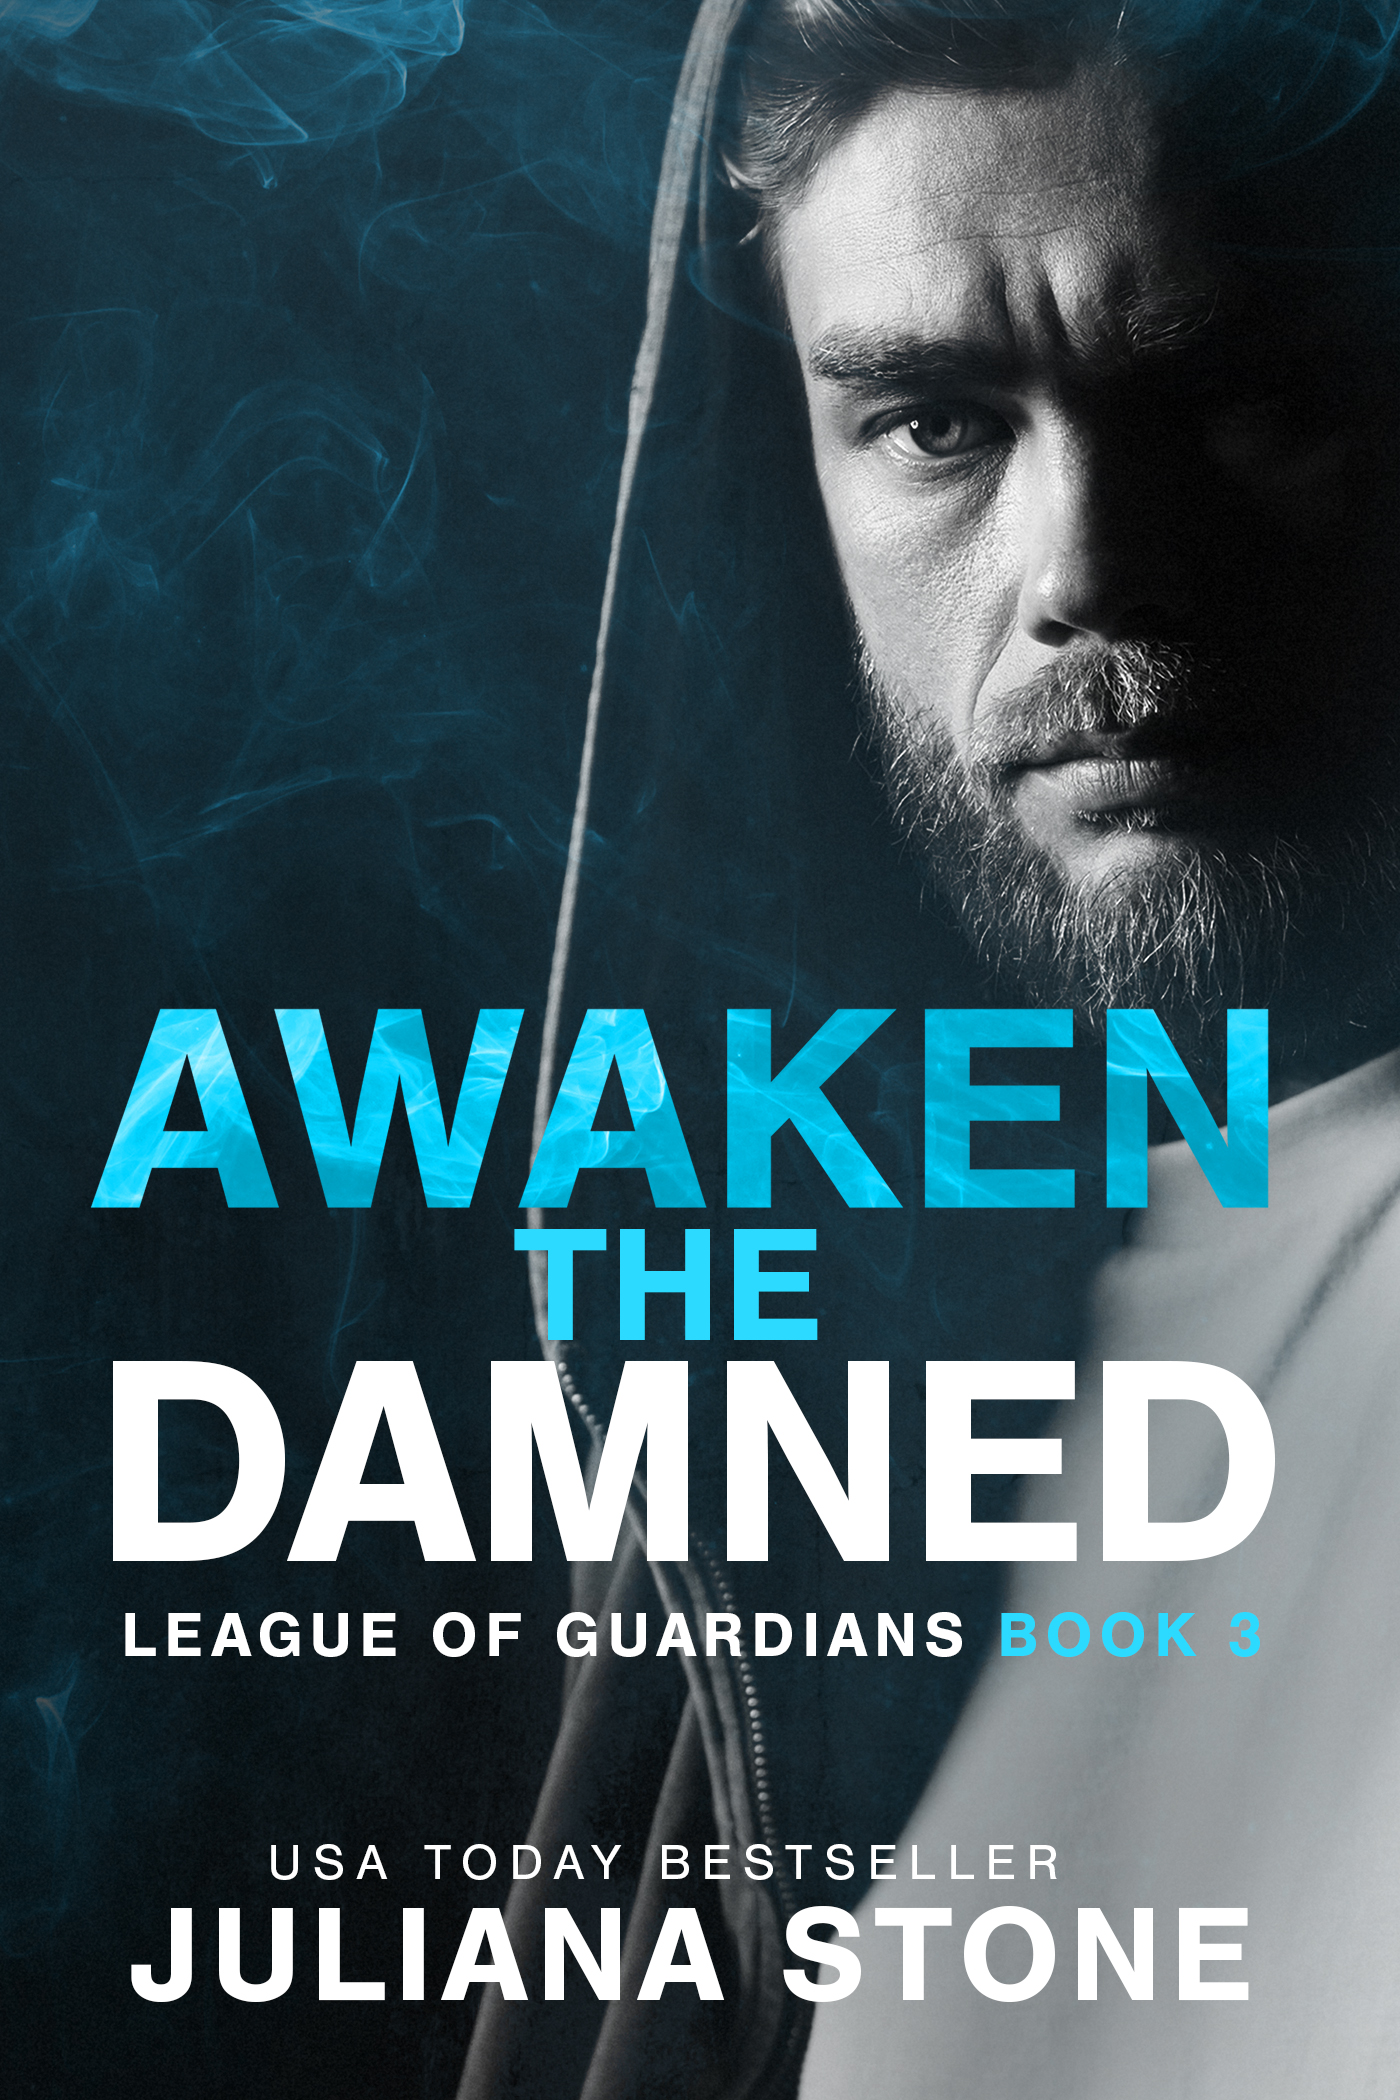 Awaken The Damned by Juliana Stone